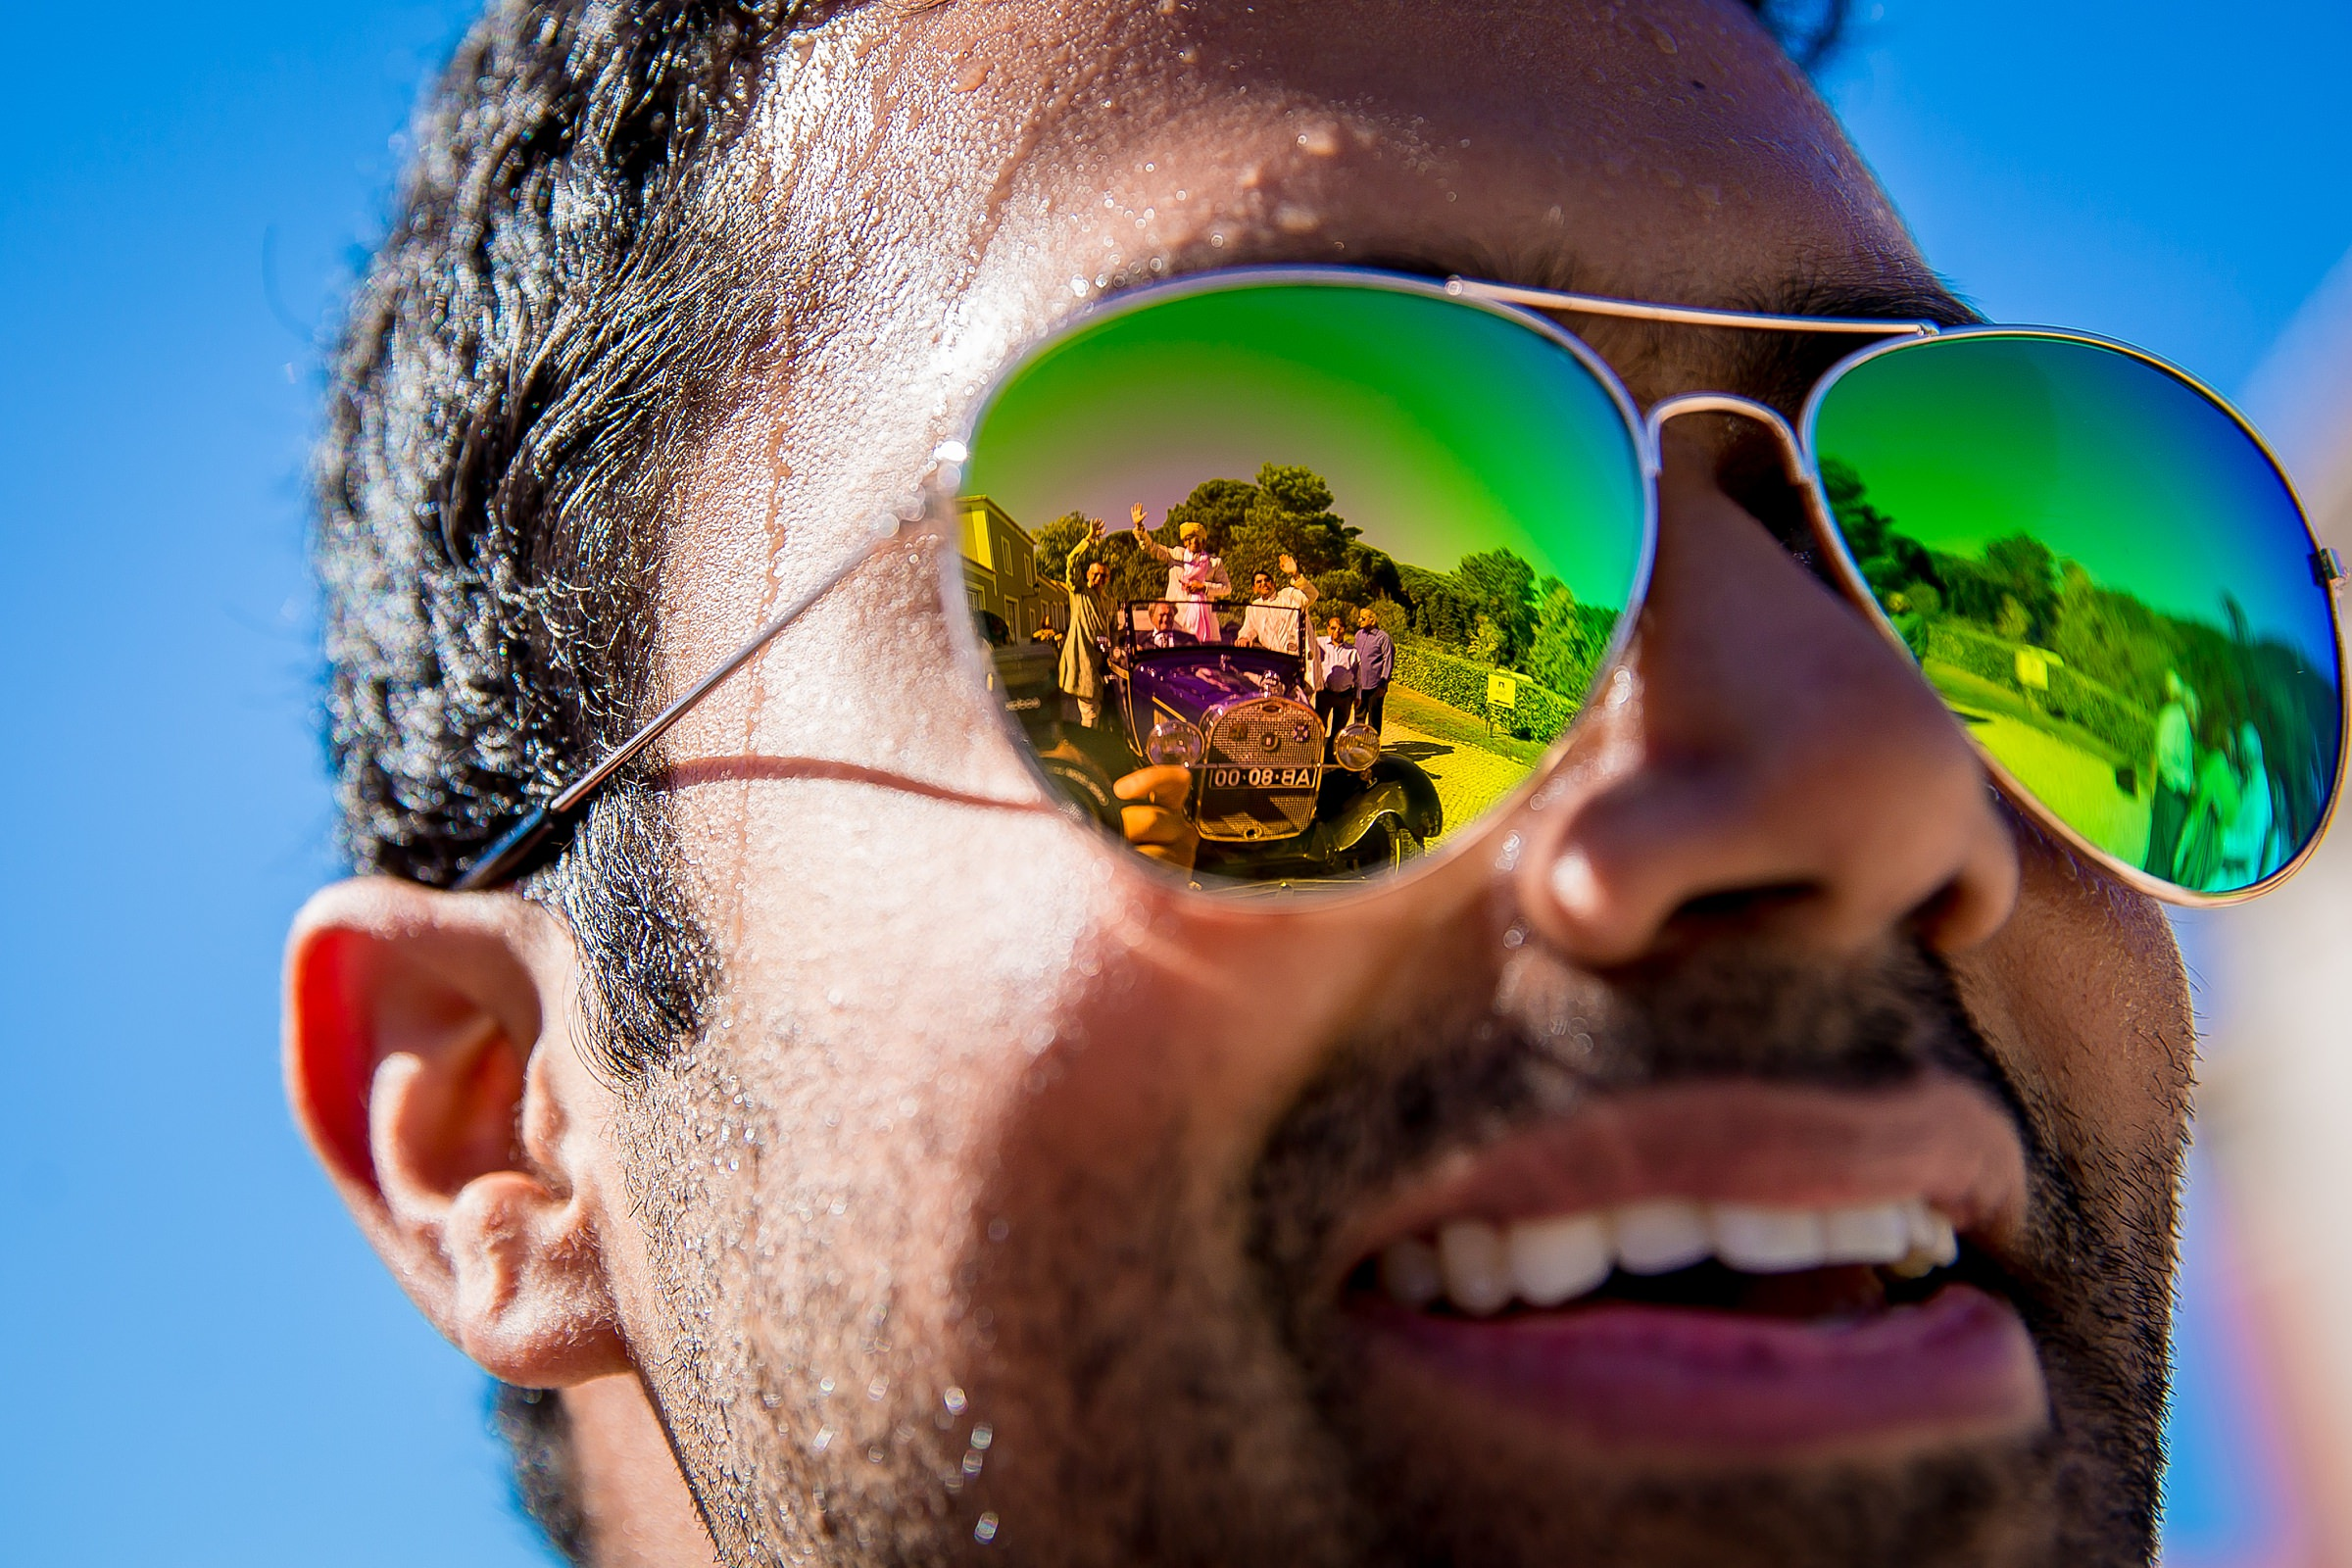 Sunglasses reflection of well wishers in vintage auto - photo by Apresh Chavda Photography